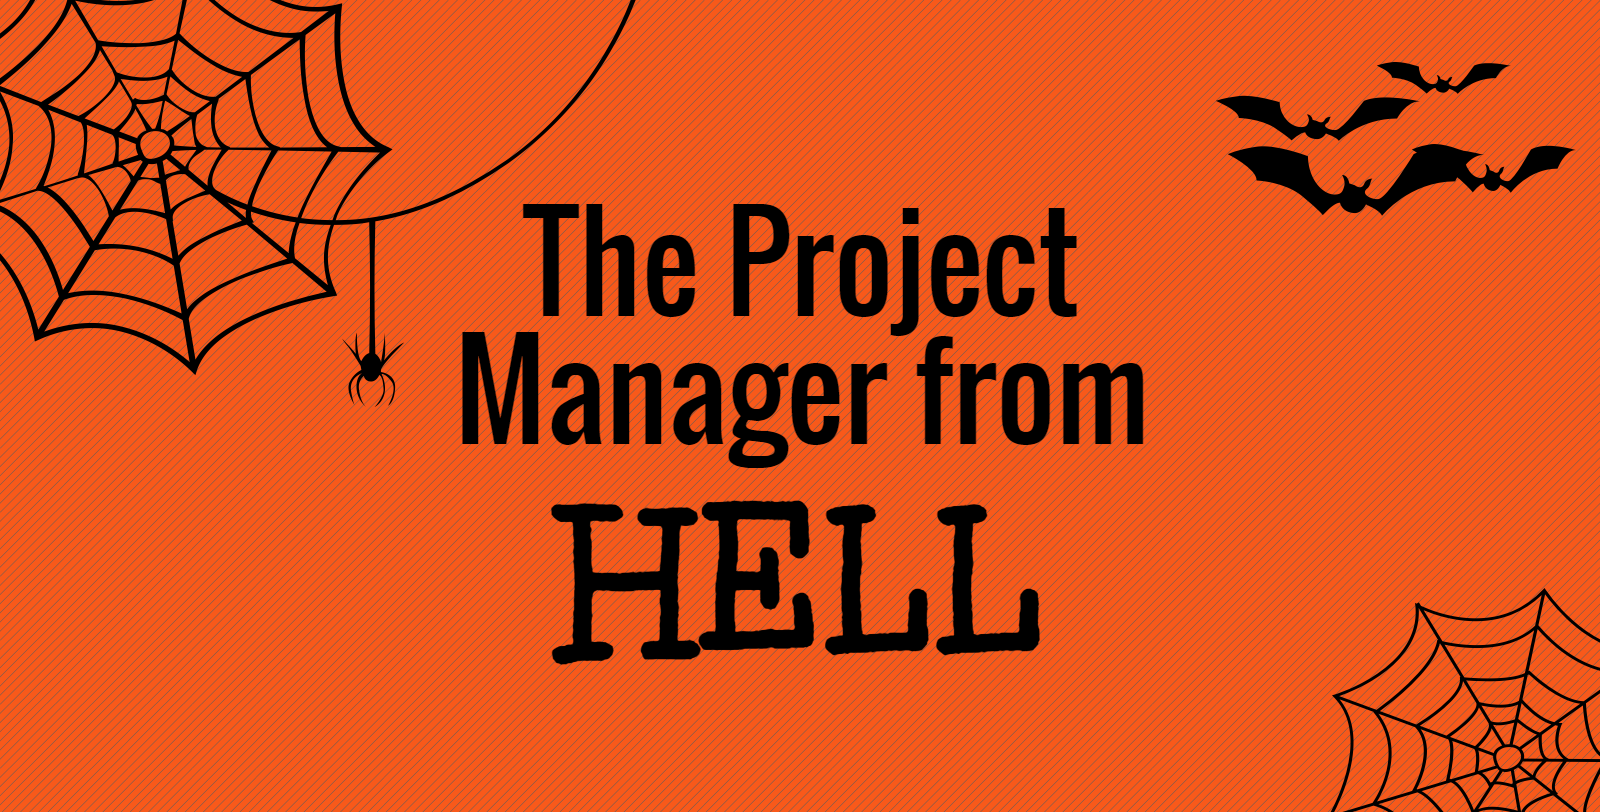 The Project Manager from Hell